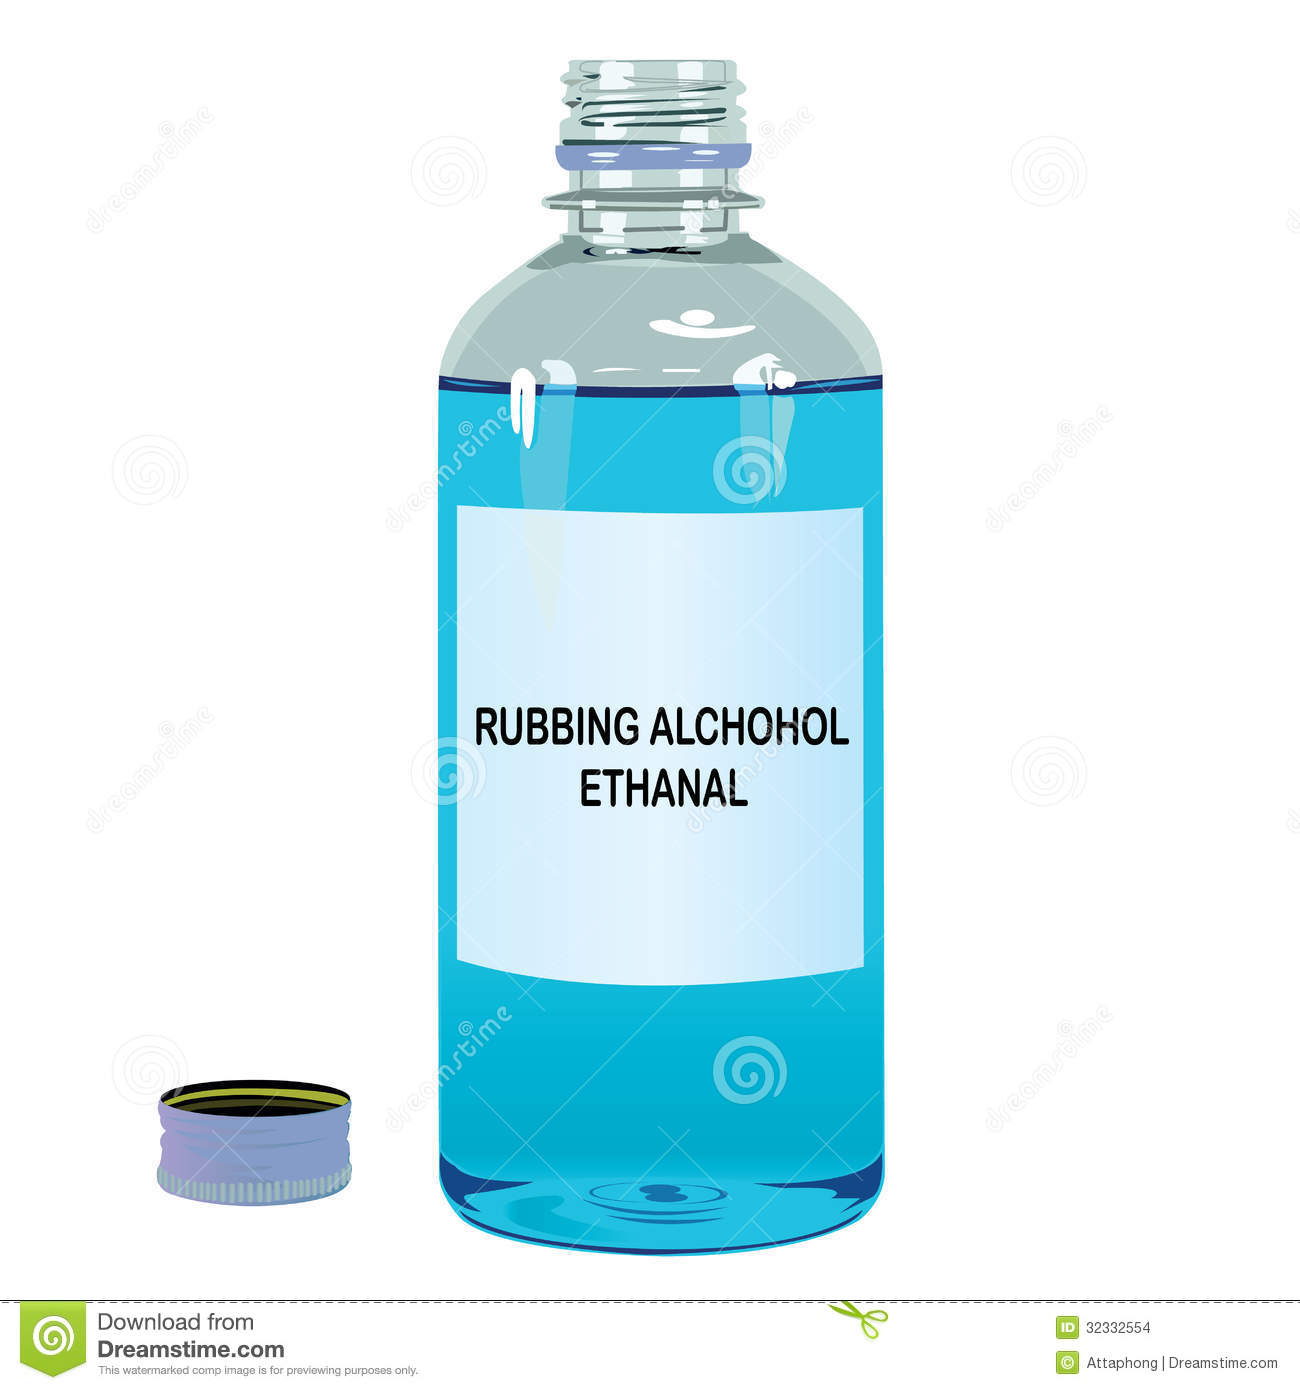 Alcohol clipart cartoon Congratulations Rubbing On Alcohol Your